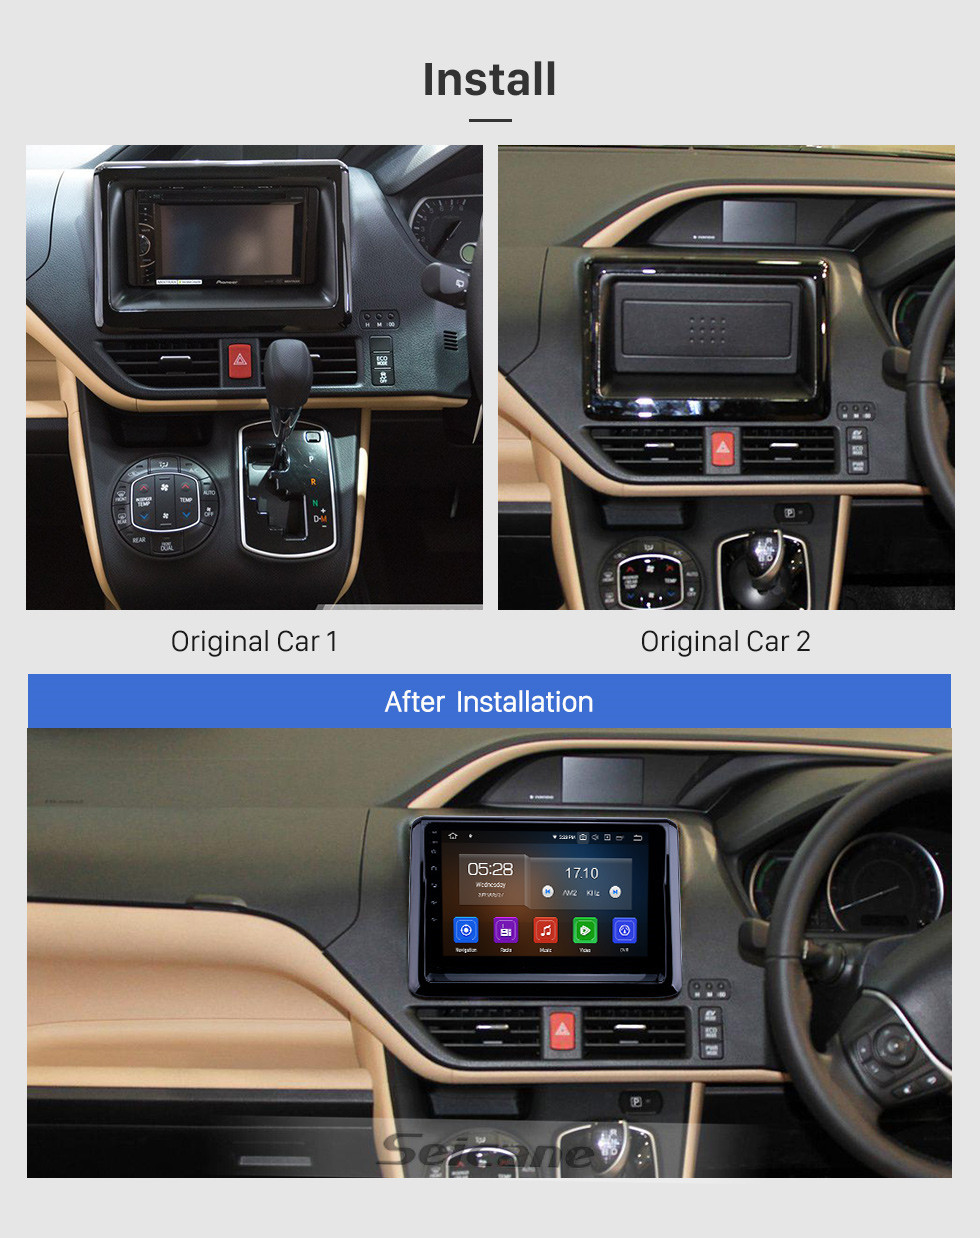 Seicane 2014 Toyota Noah Android 10.0 9 inch GPS Navigation Radio Bluetooth WIFI HD Touchscreen Carplay support OBD2 TPMS Backup camera